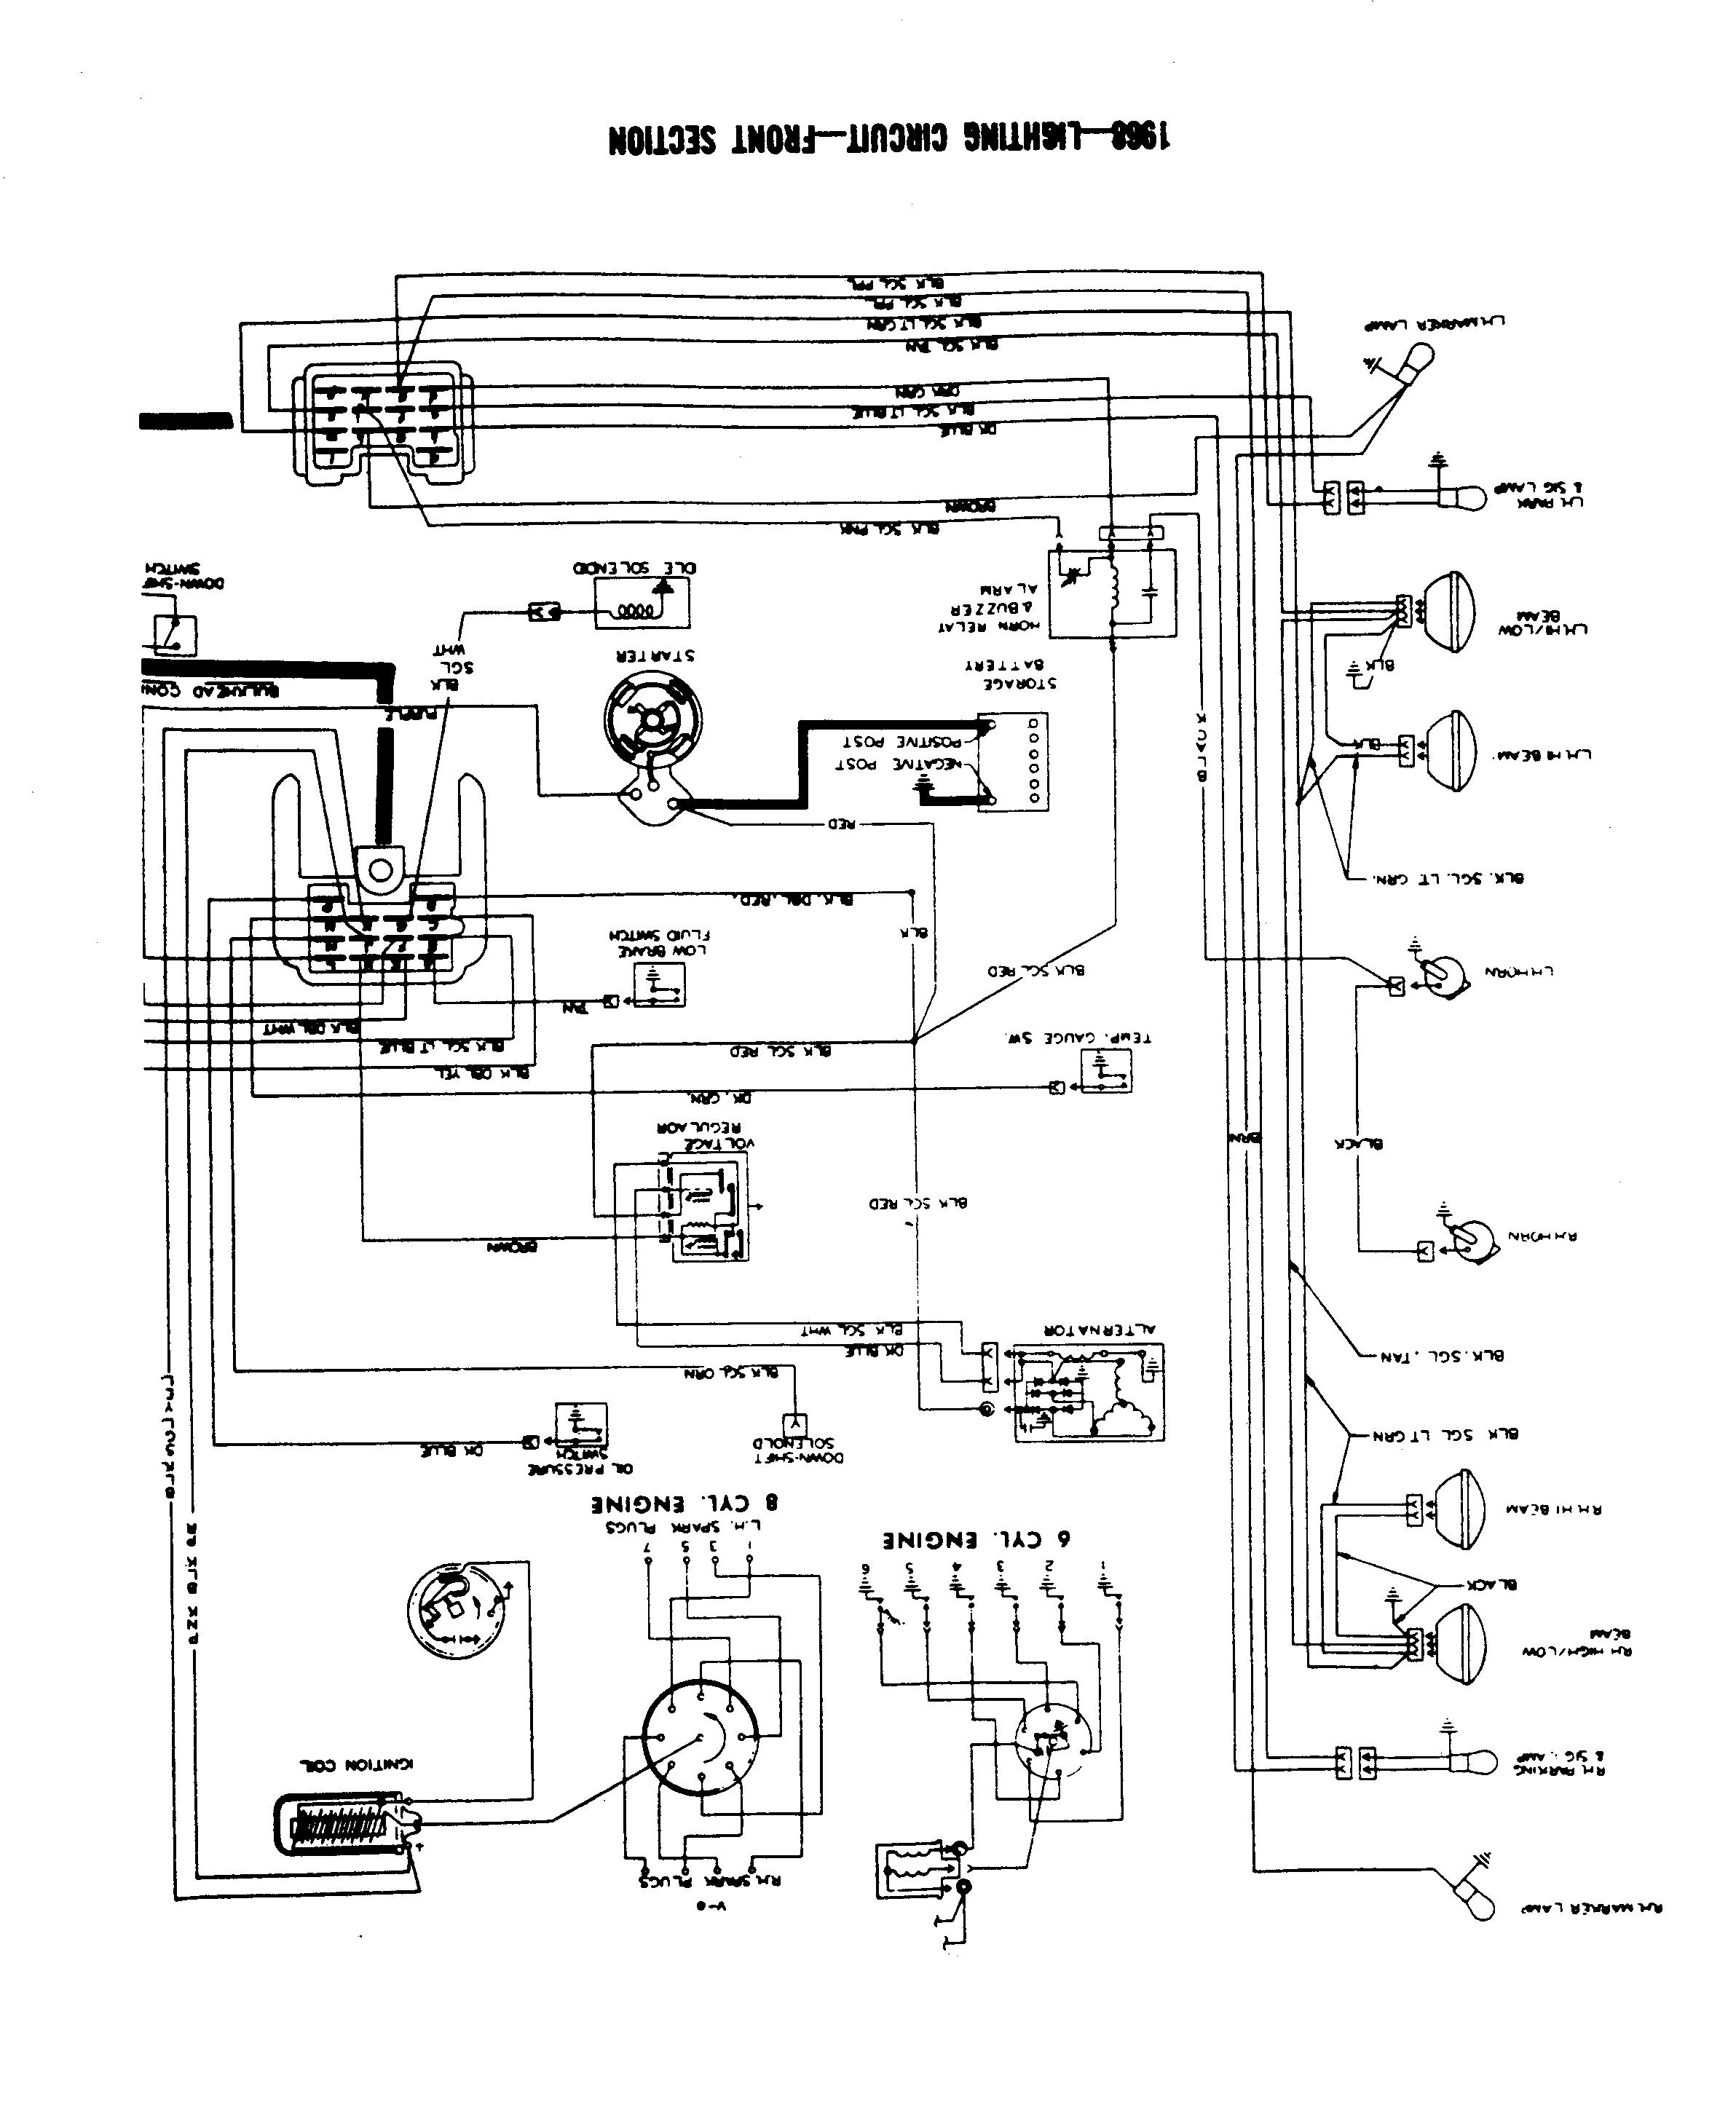 mercury engine diagram similiar mercury sable cooling system mercury cougar engine diagram diy wiring diagrams 1967 mercury cougar starter wiring 1967 home wiring diagrams